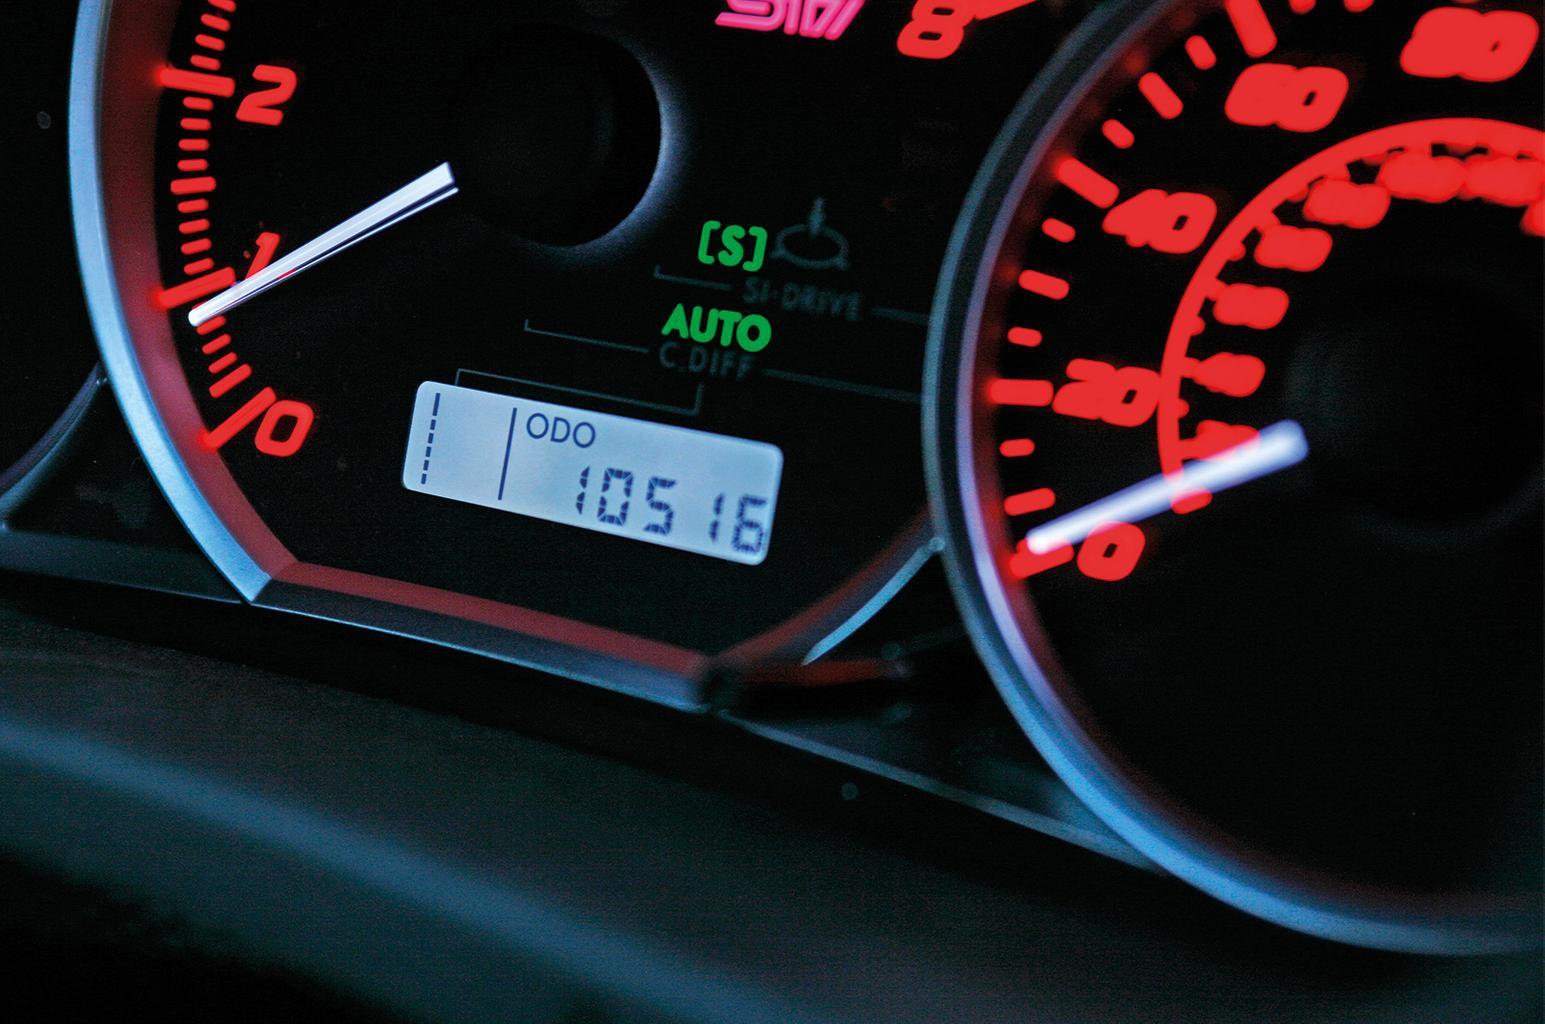 Car clocking - how to spot a clocked car